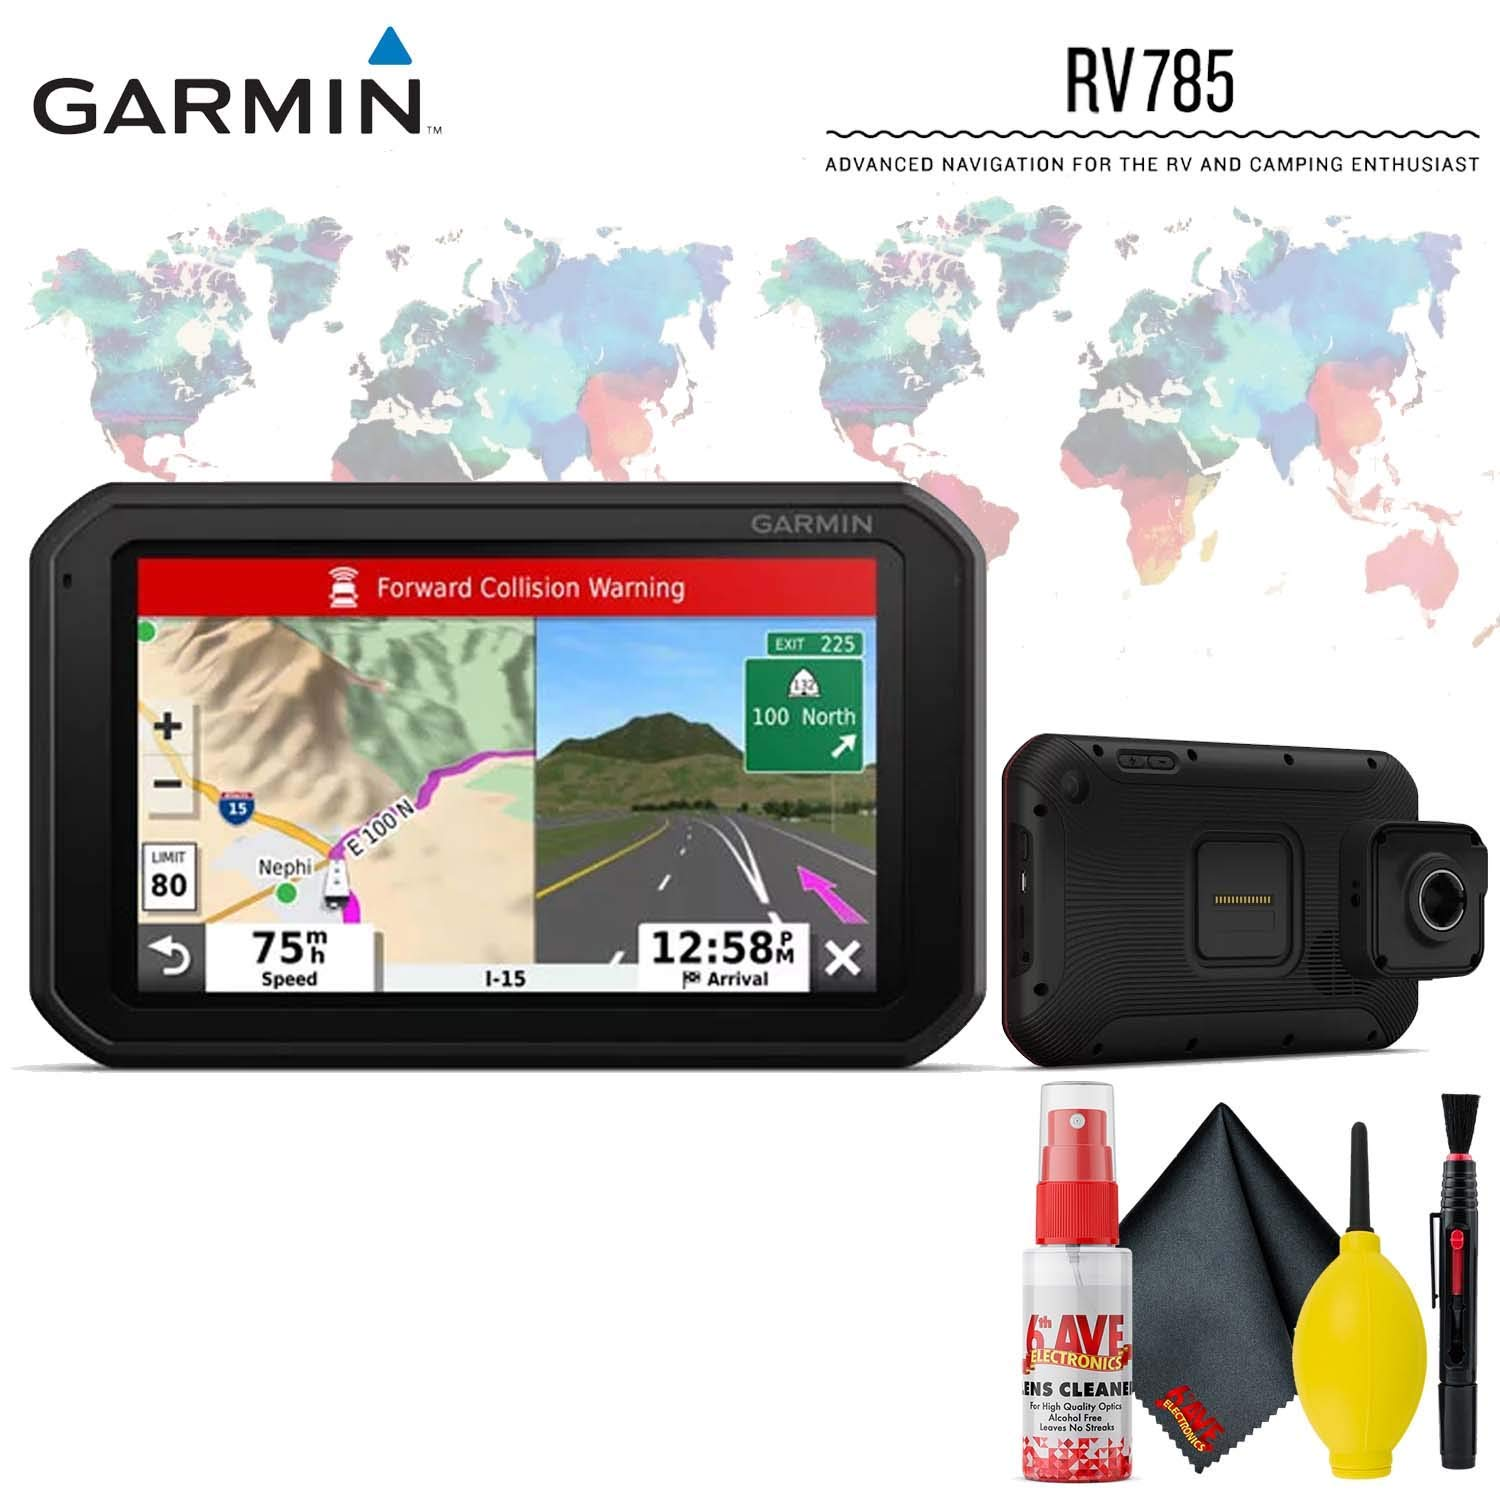 Garmin RV 785 & Traffic, Advanced GPS Navigator for RVs with Built-in Dash Cam, 7'' Touch Display and Voice-Activated Navigation Base Accessory Kit by Garmin